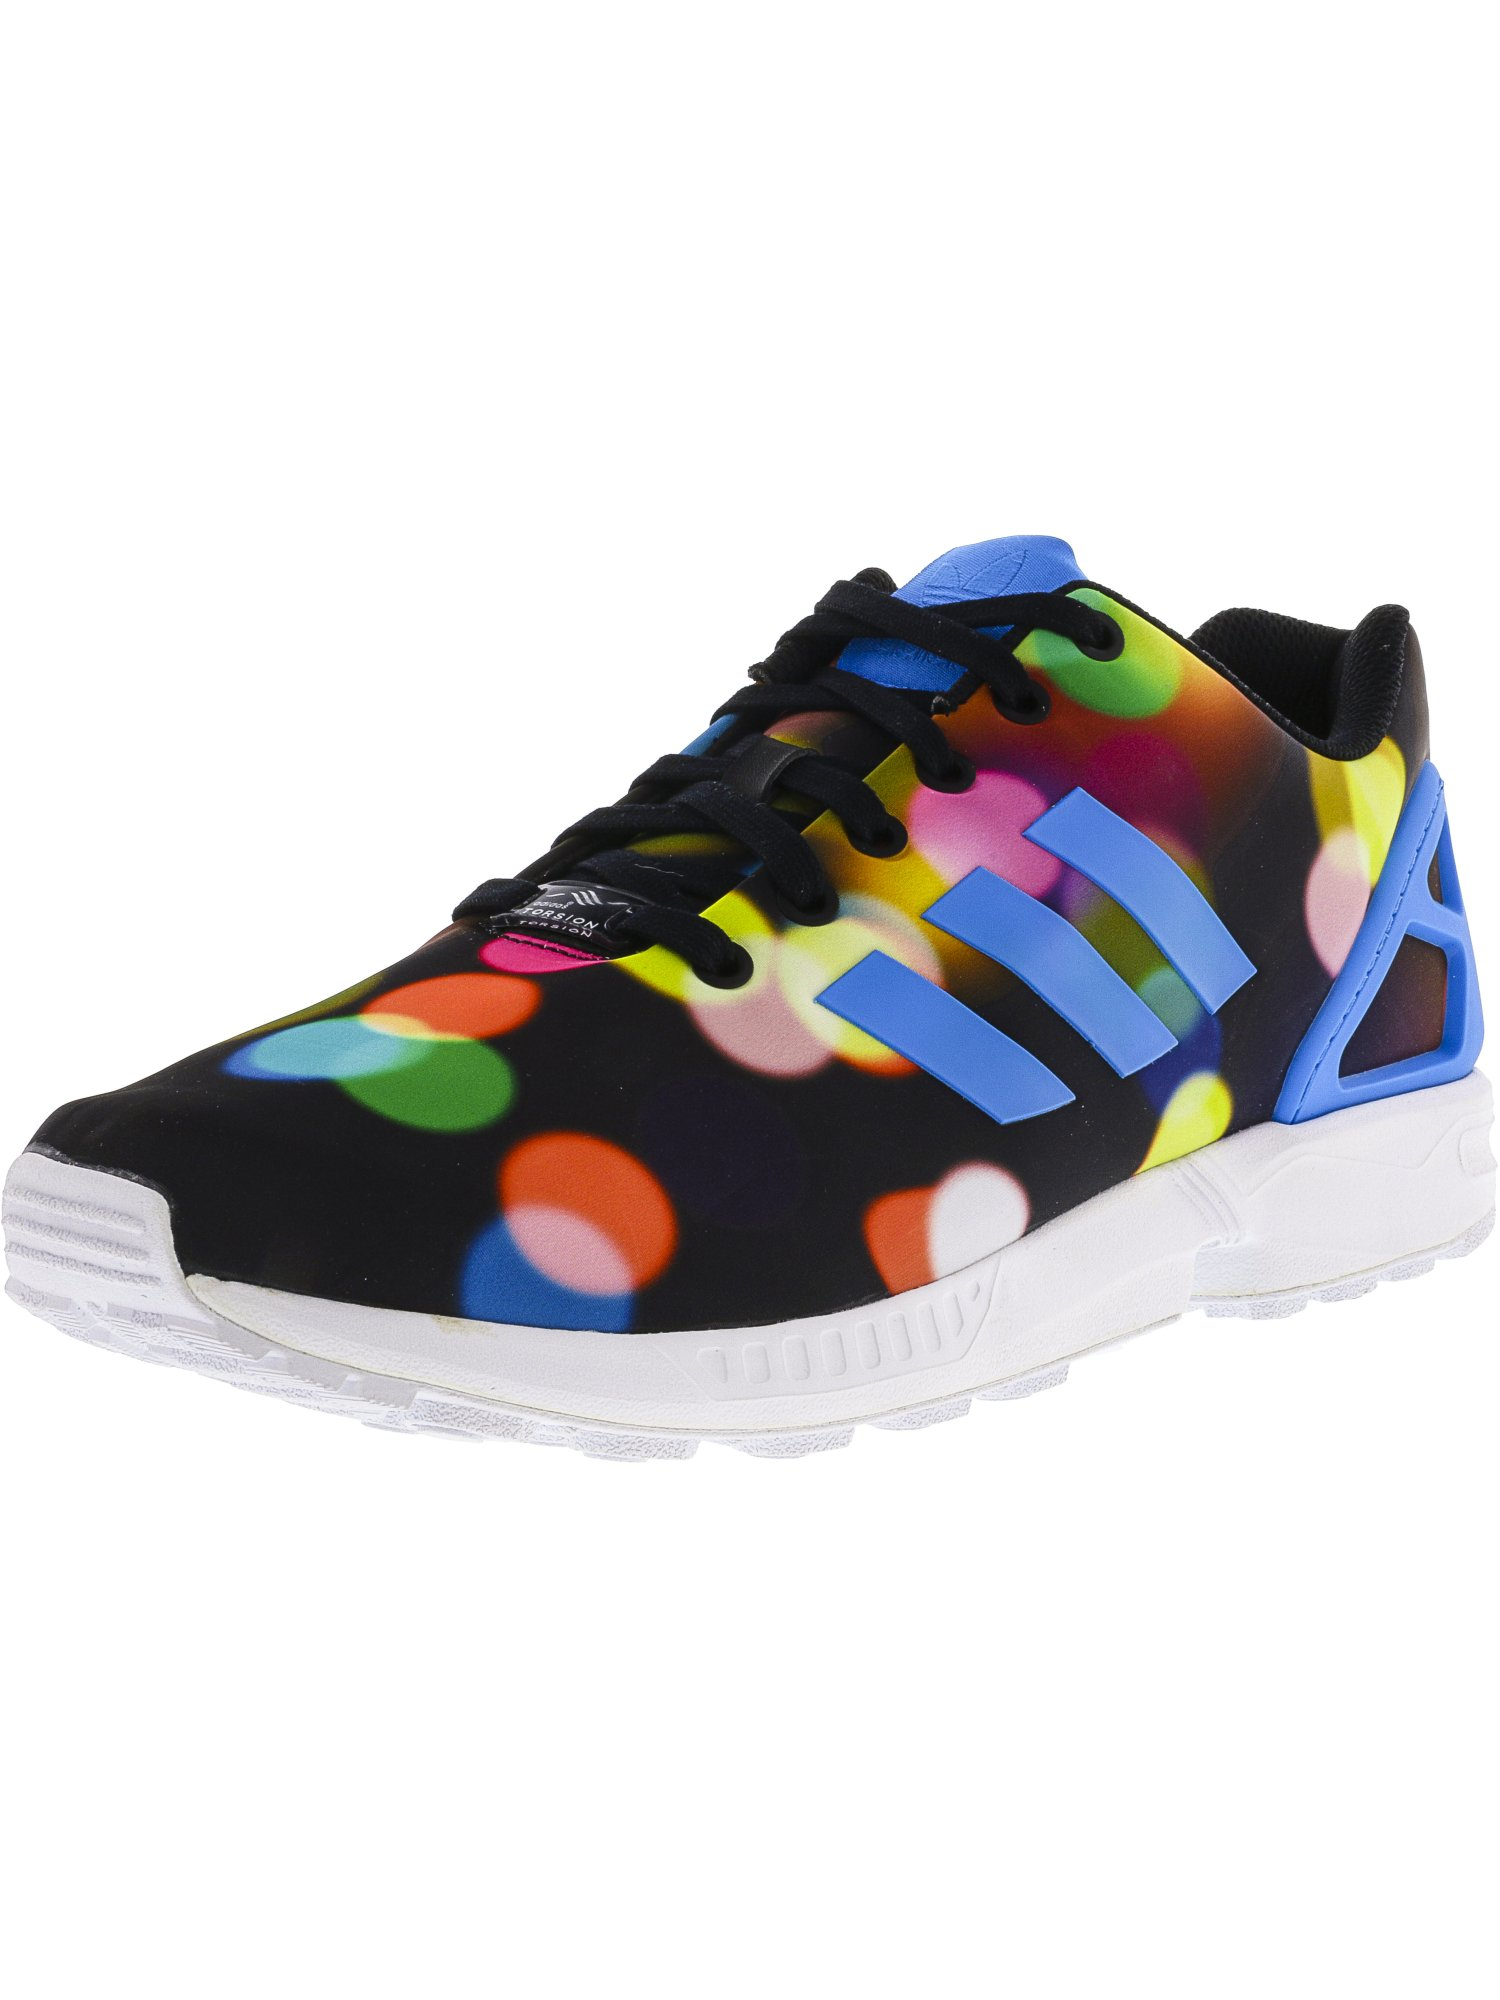 save off afefa 8689c ... Adidas Men s Zx Flux Flux Flux Ankle-High Running Shoe 45c23c ...